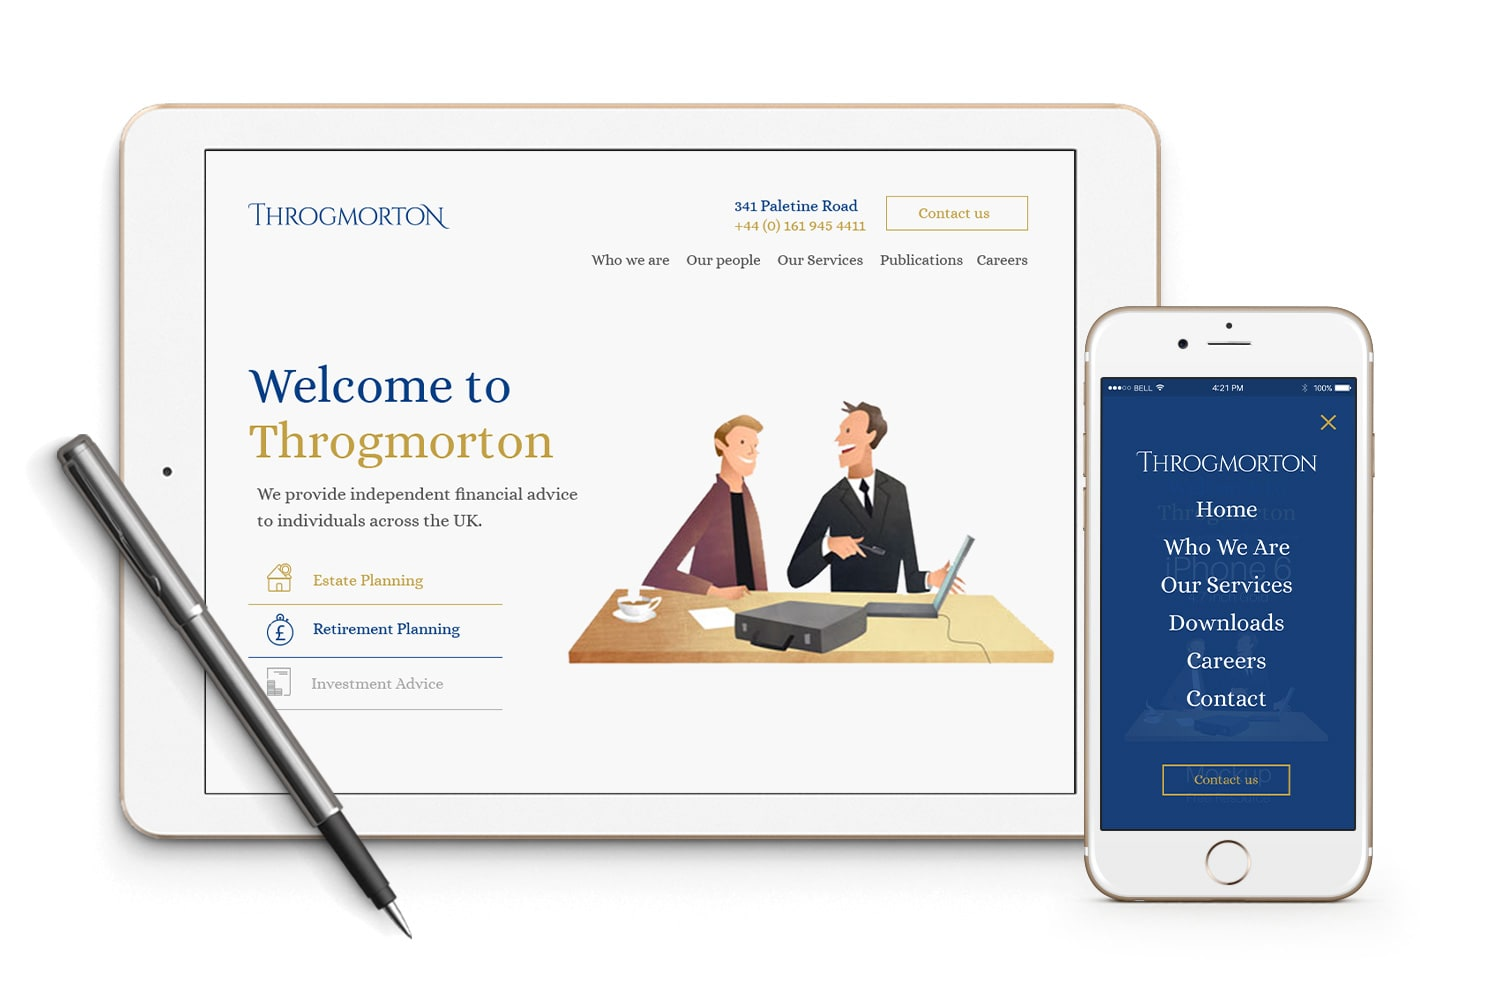 Throgmorton Responsive Web Design on Mobile & Tablet